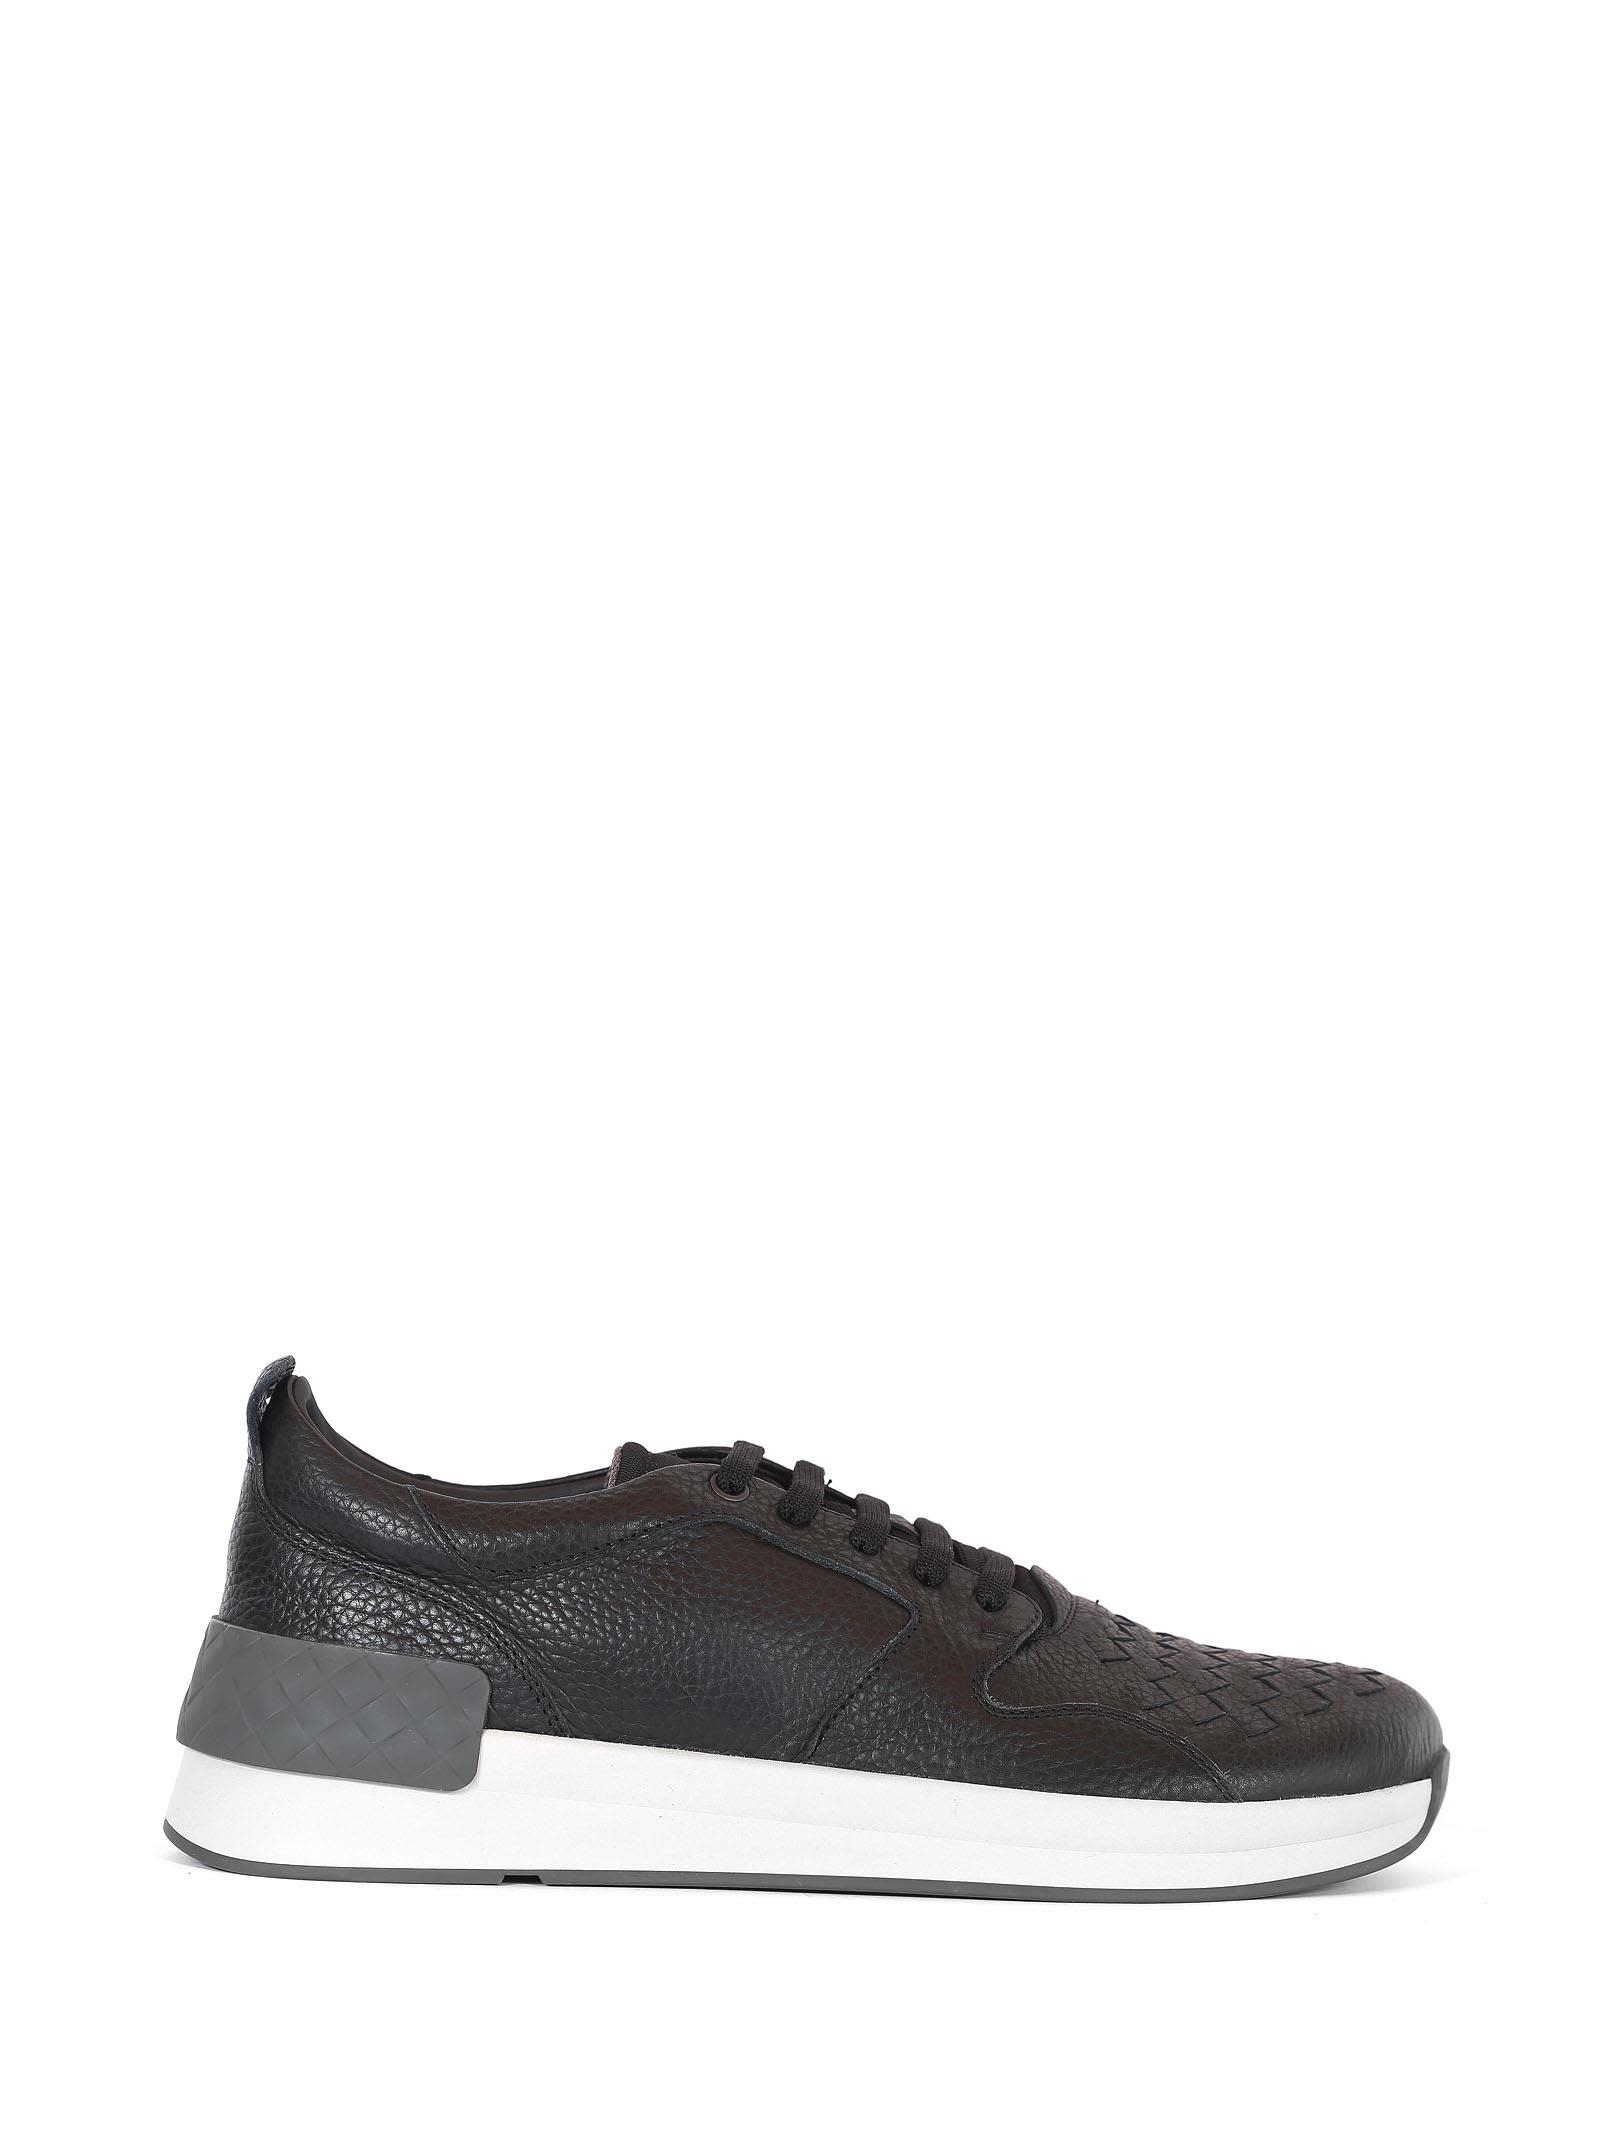 Bottega Veneta Braided Black Leather Sneakers